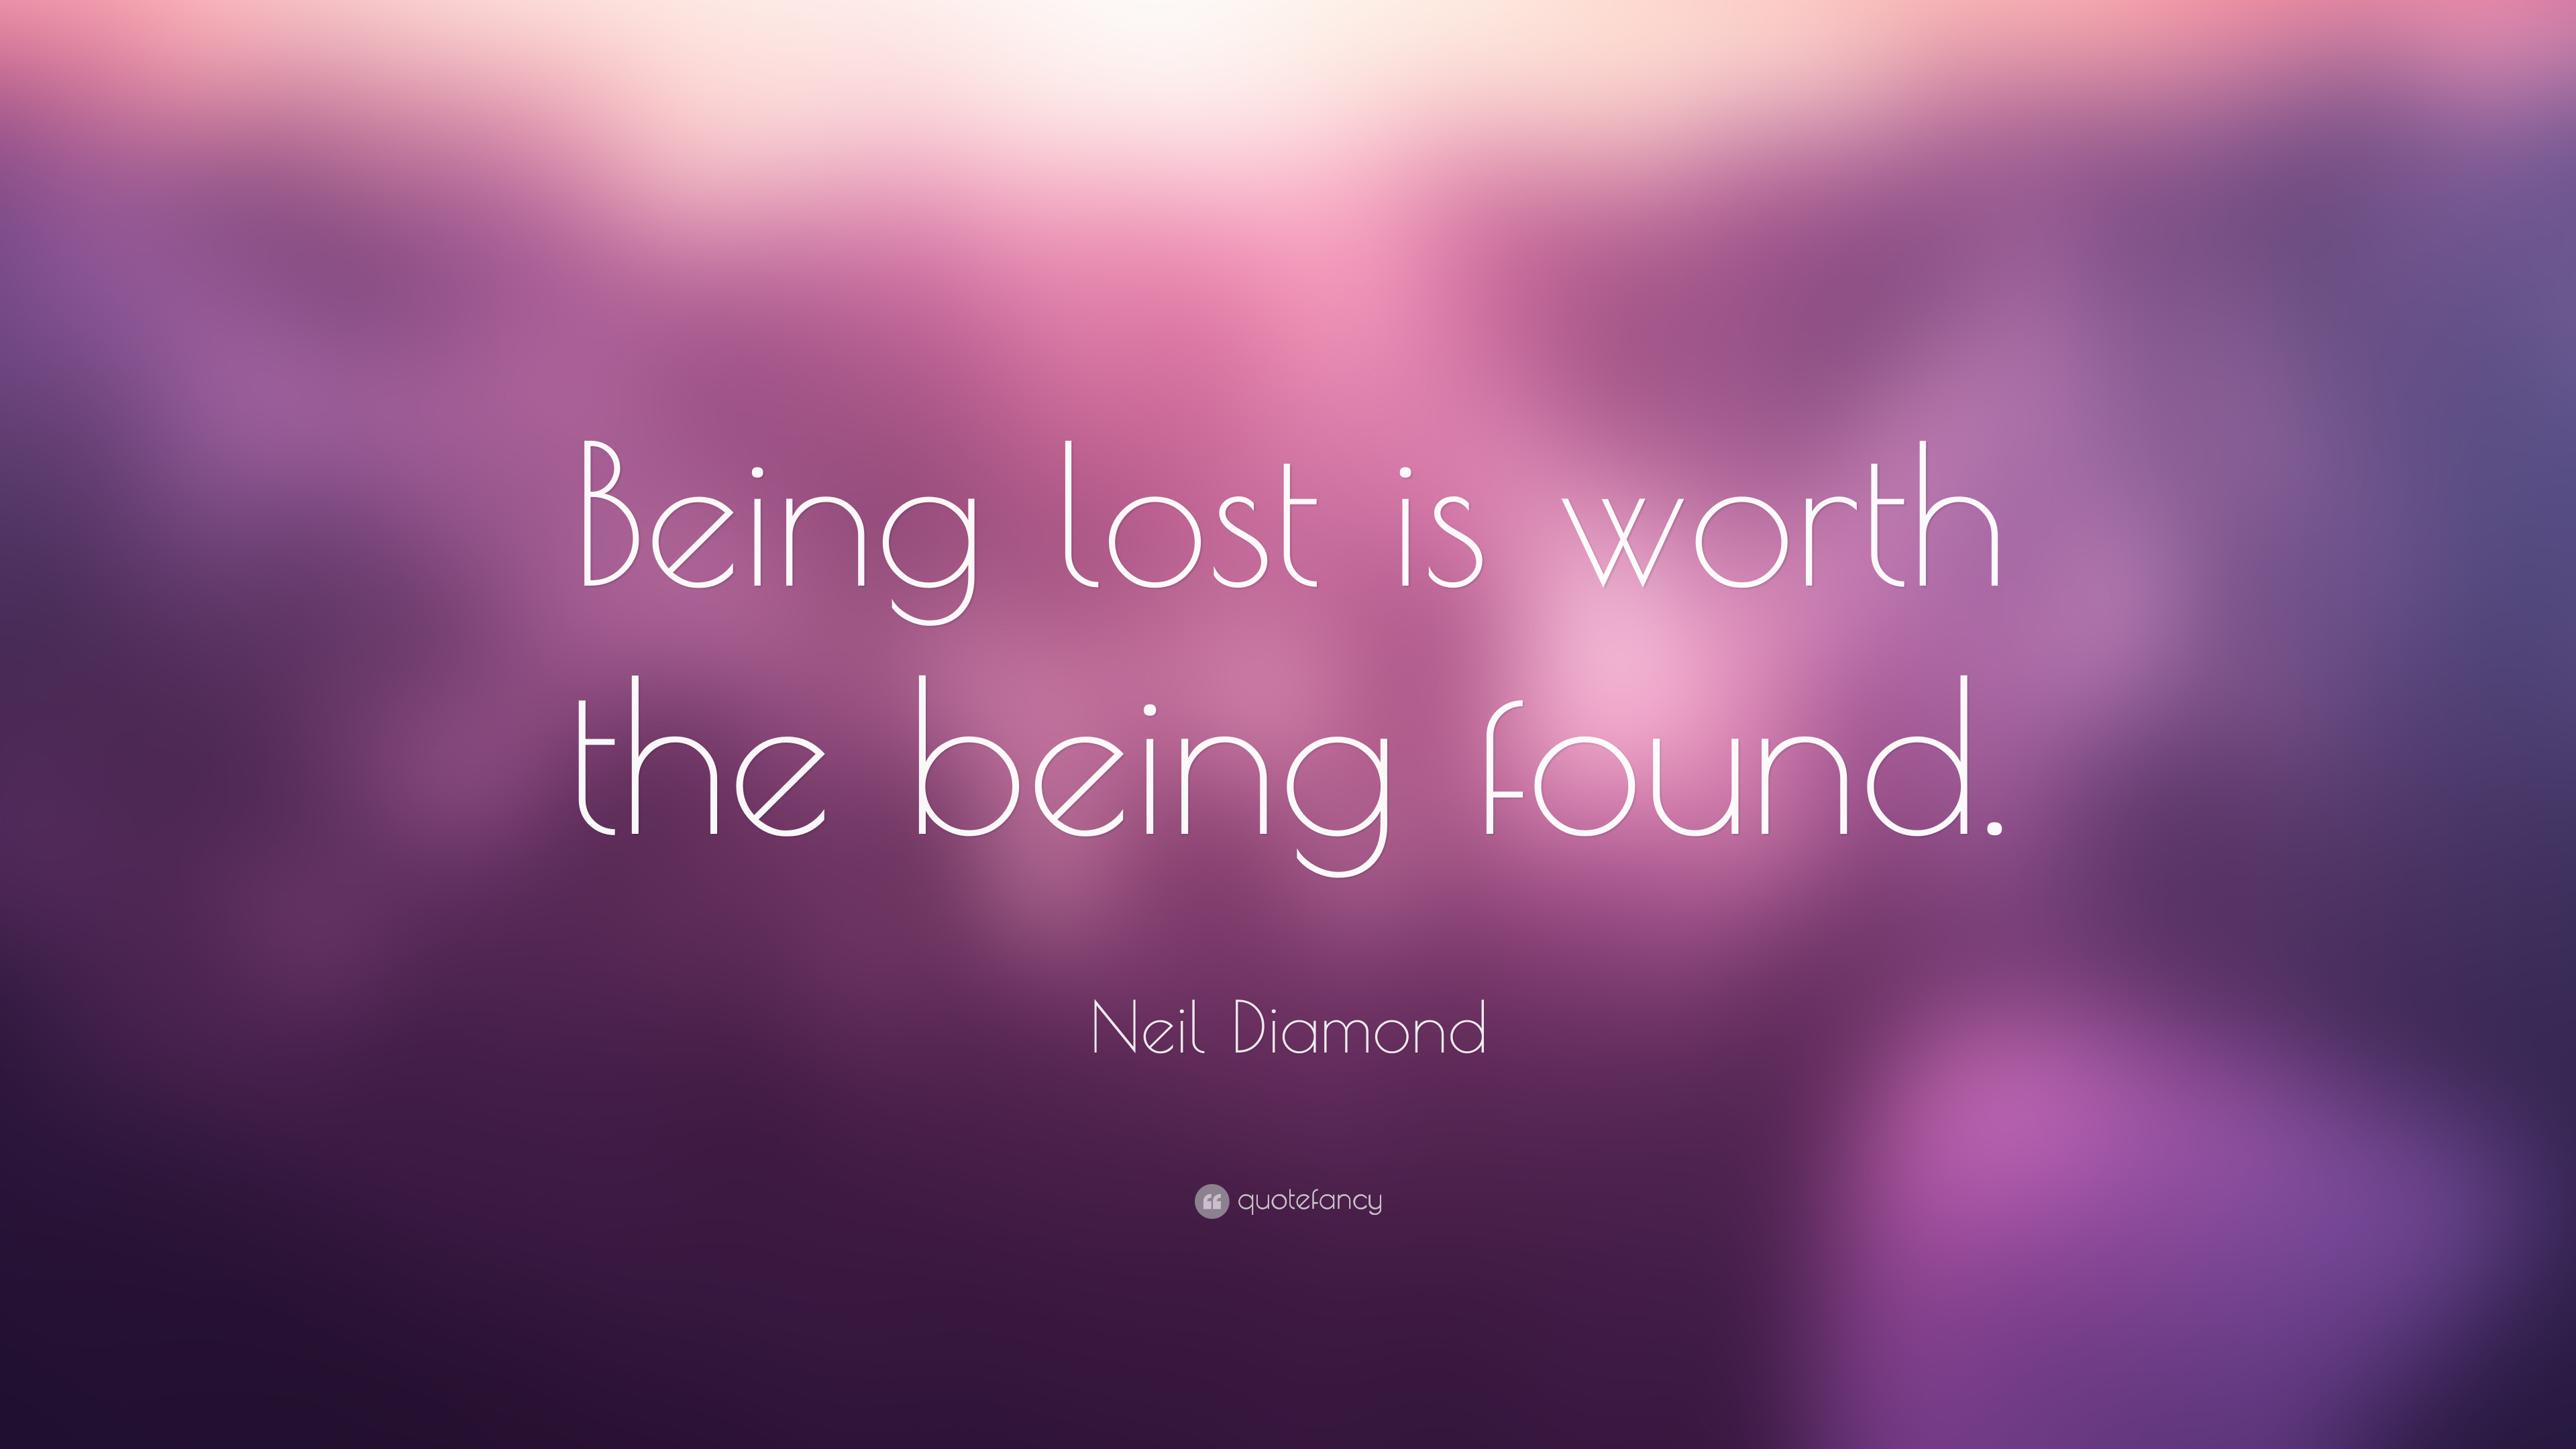 """Quotes About Being Lost Neil Diamond Quote: """"Being lost is worth the being found."""" (7  Quotes About Being Lost"""